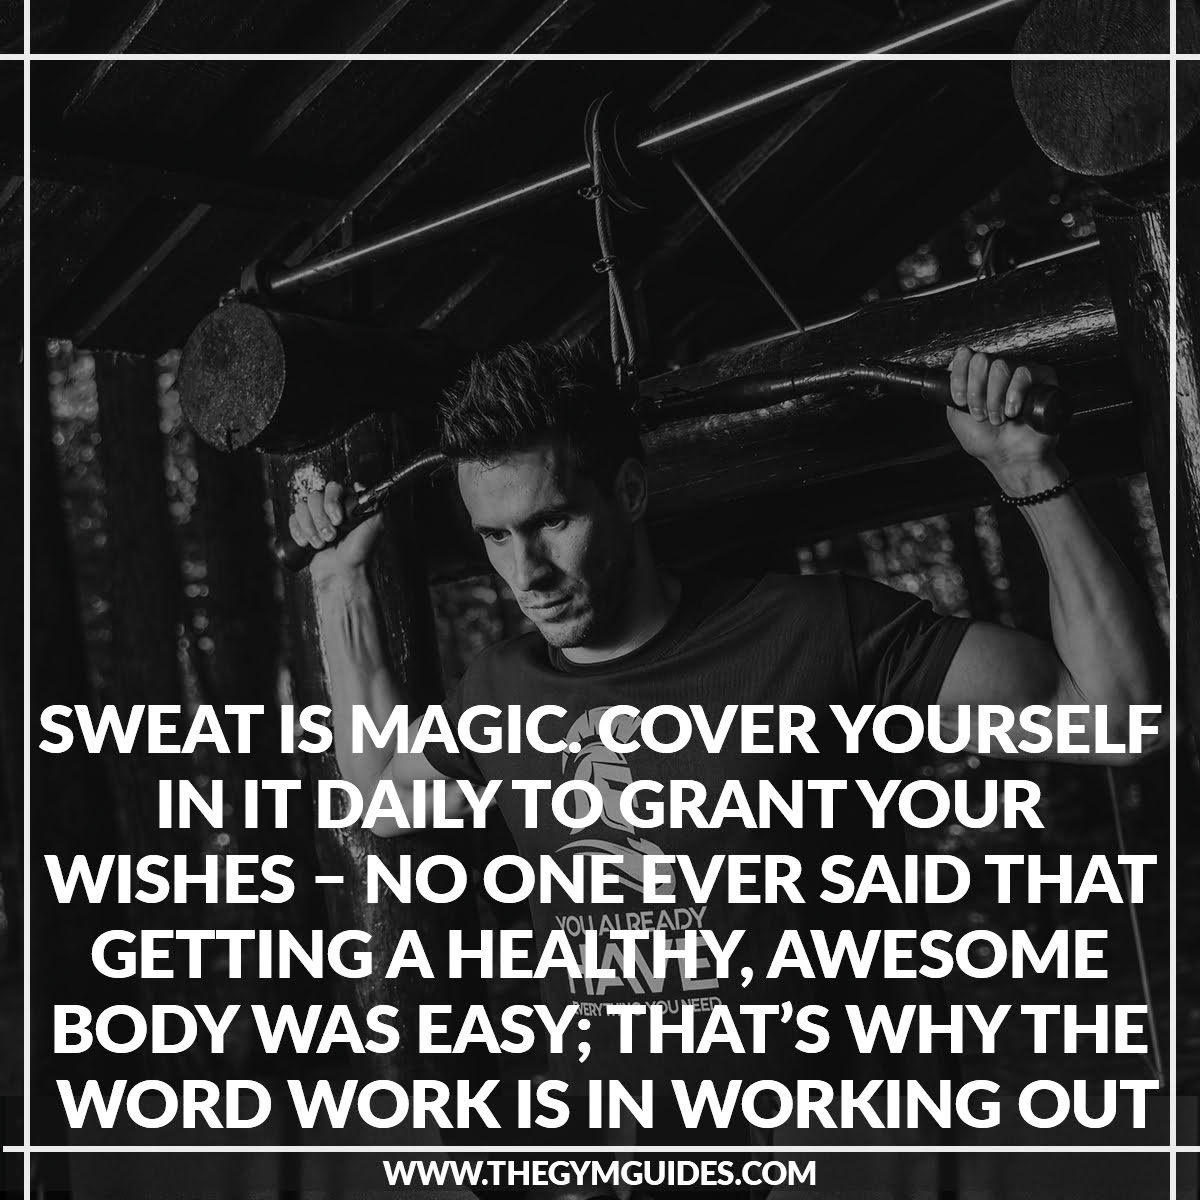 Sweat is Magic. Cover yourself in it daily to Grant your Wishes – no one ever said that getting a healthy, awesome body was easy_ that's why the word WORK is in working out